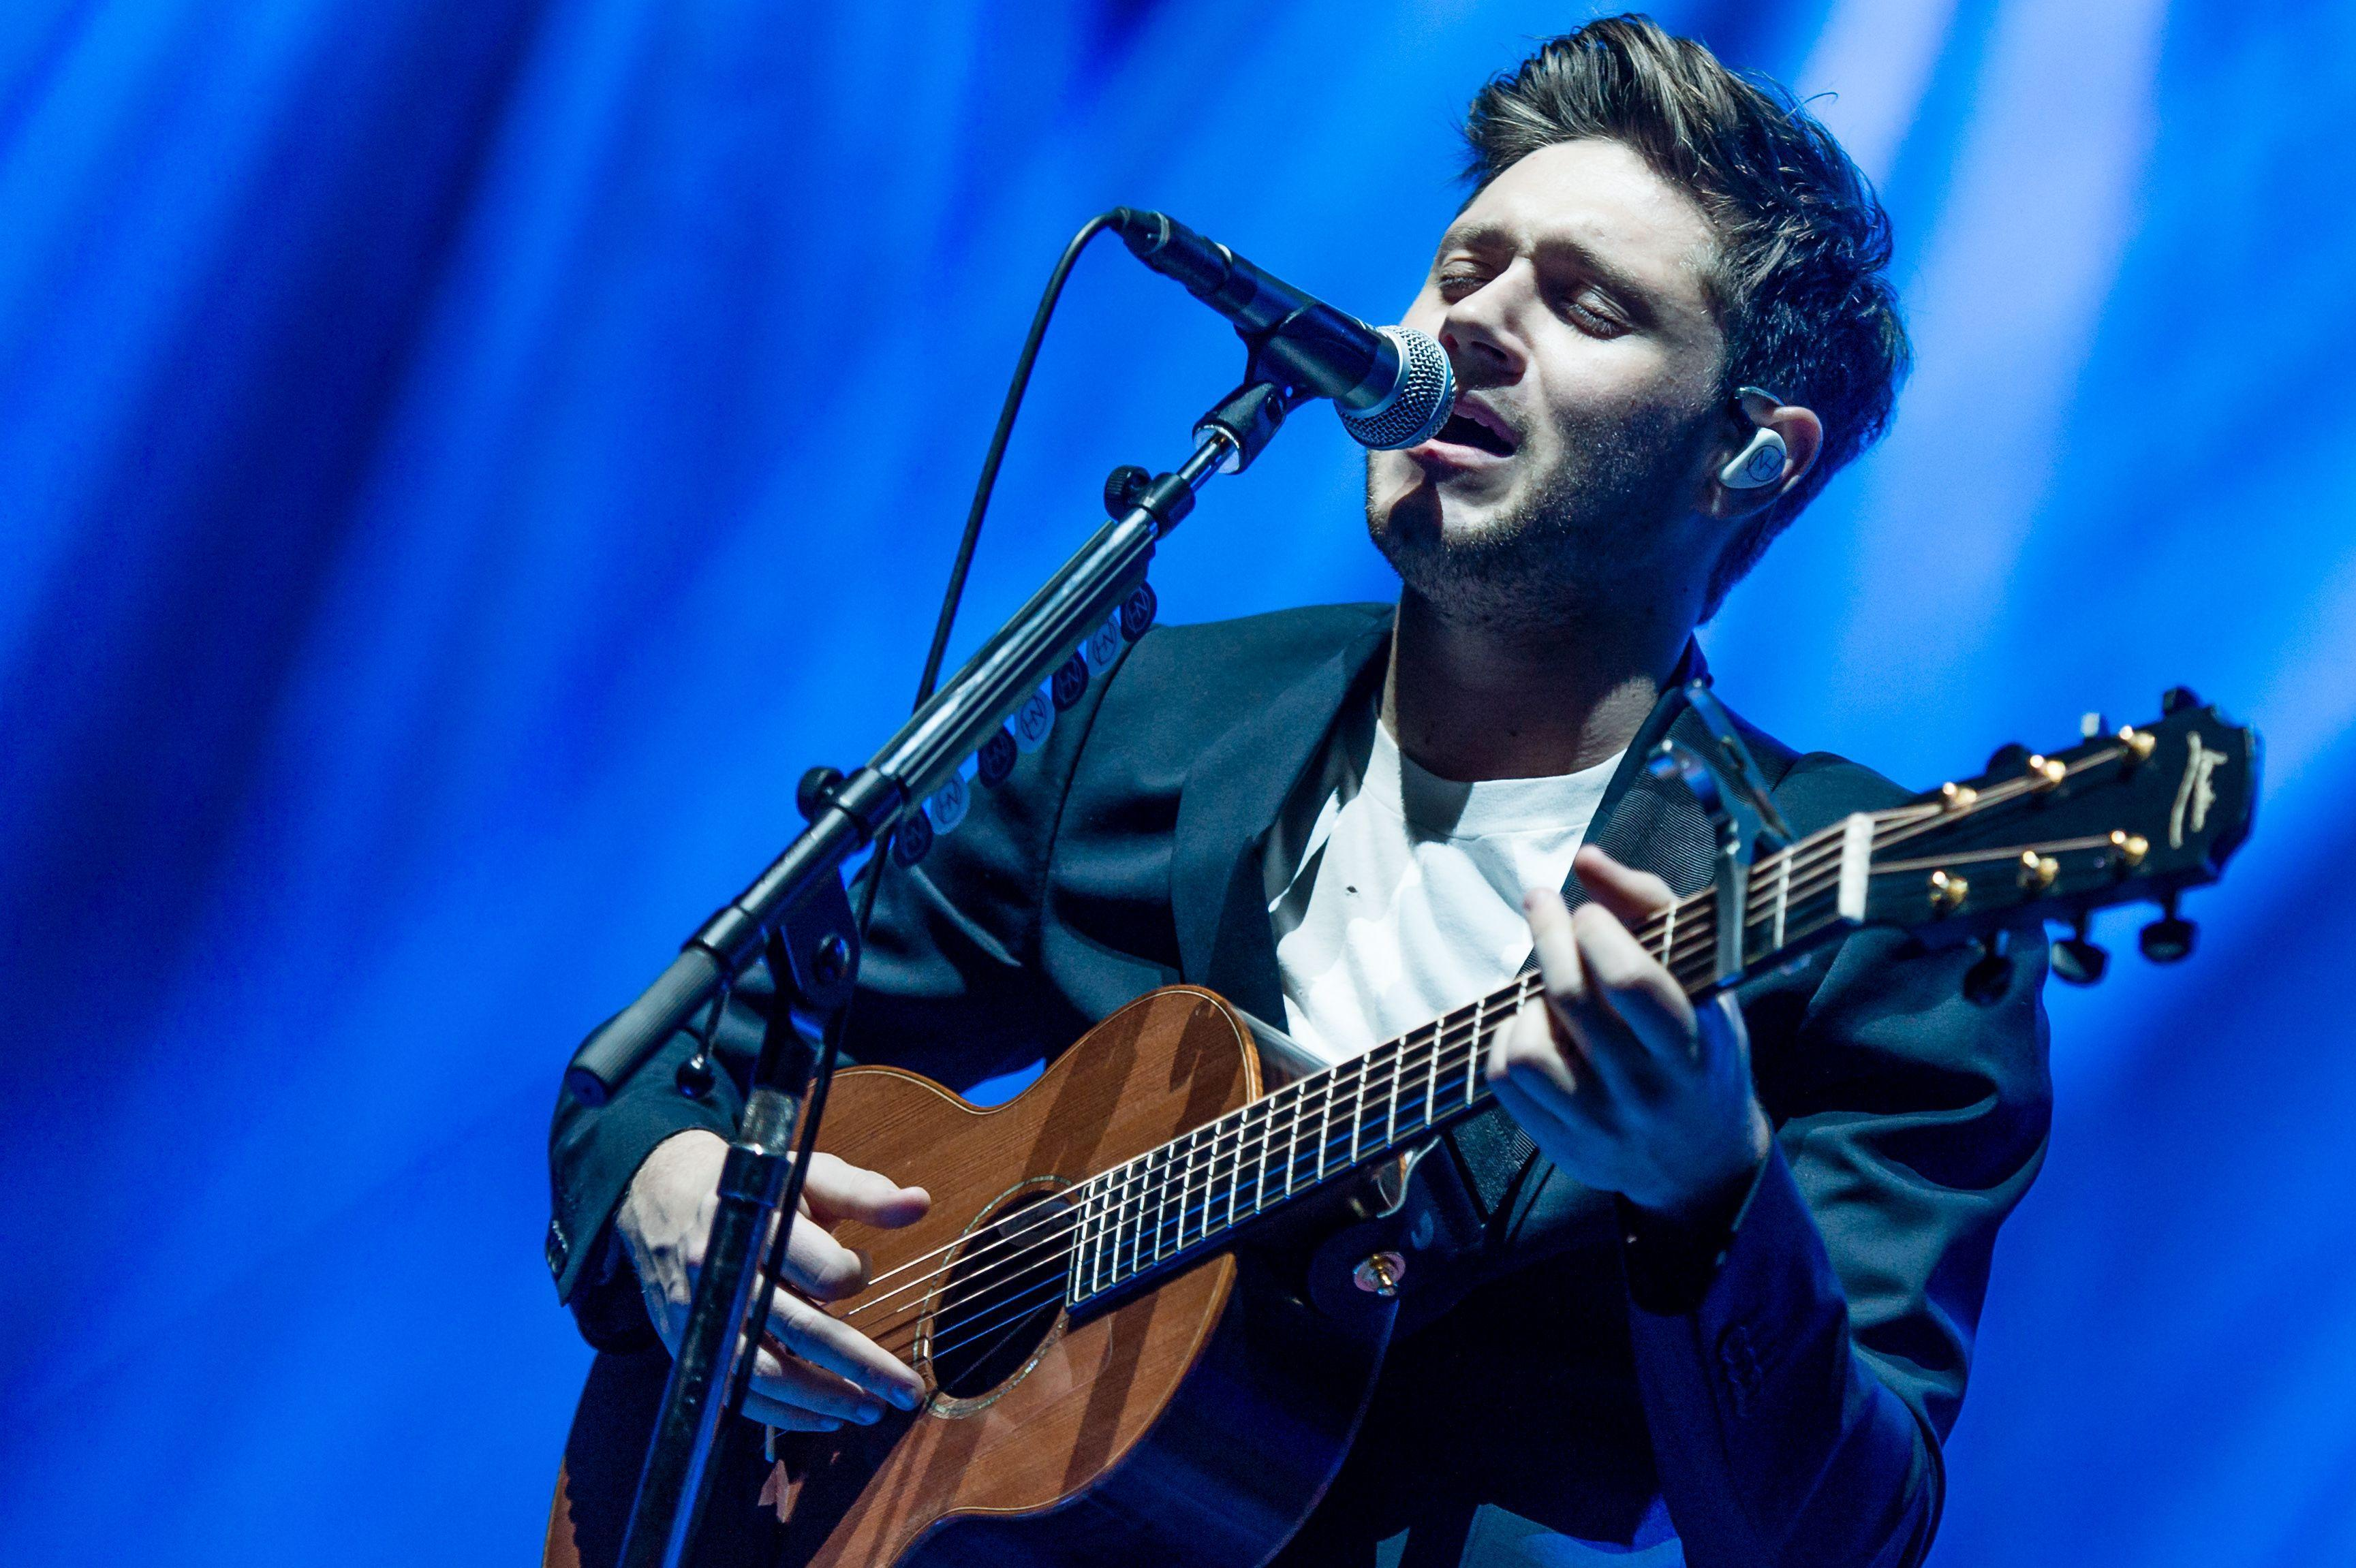 Niall Horan begs fans to 'take care' after fifteen people faint at Mexico gig almost forcing him to cancel